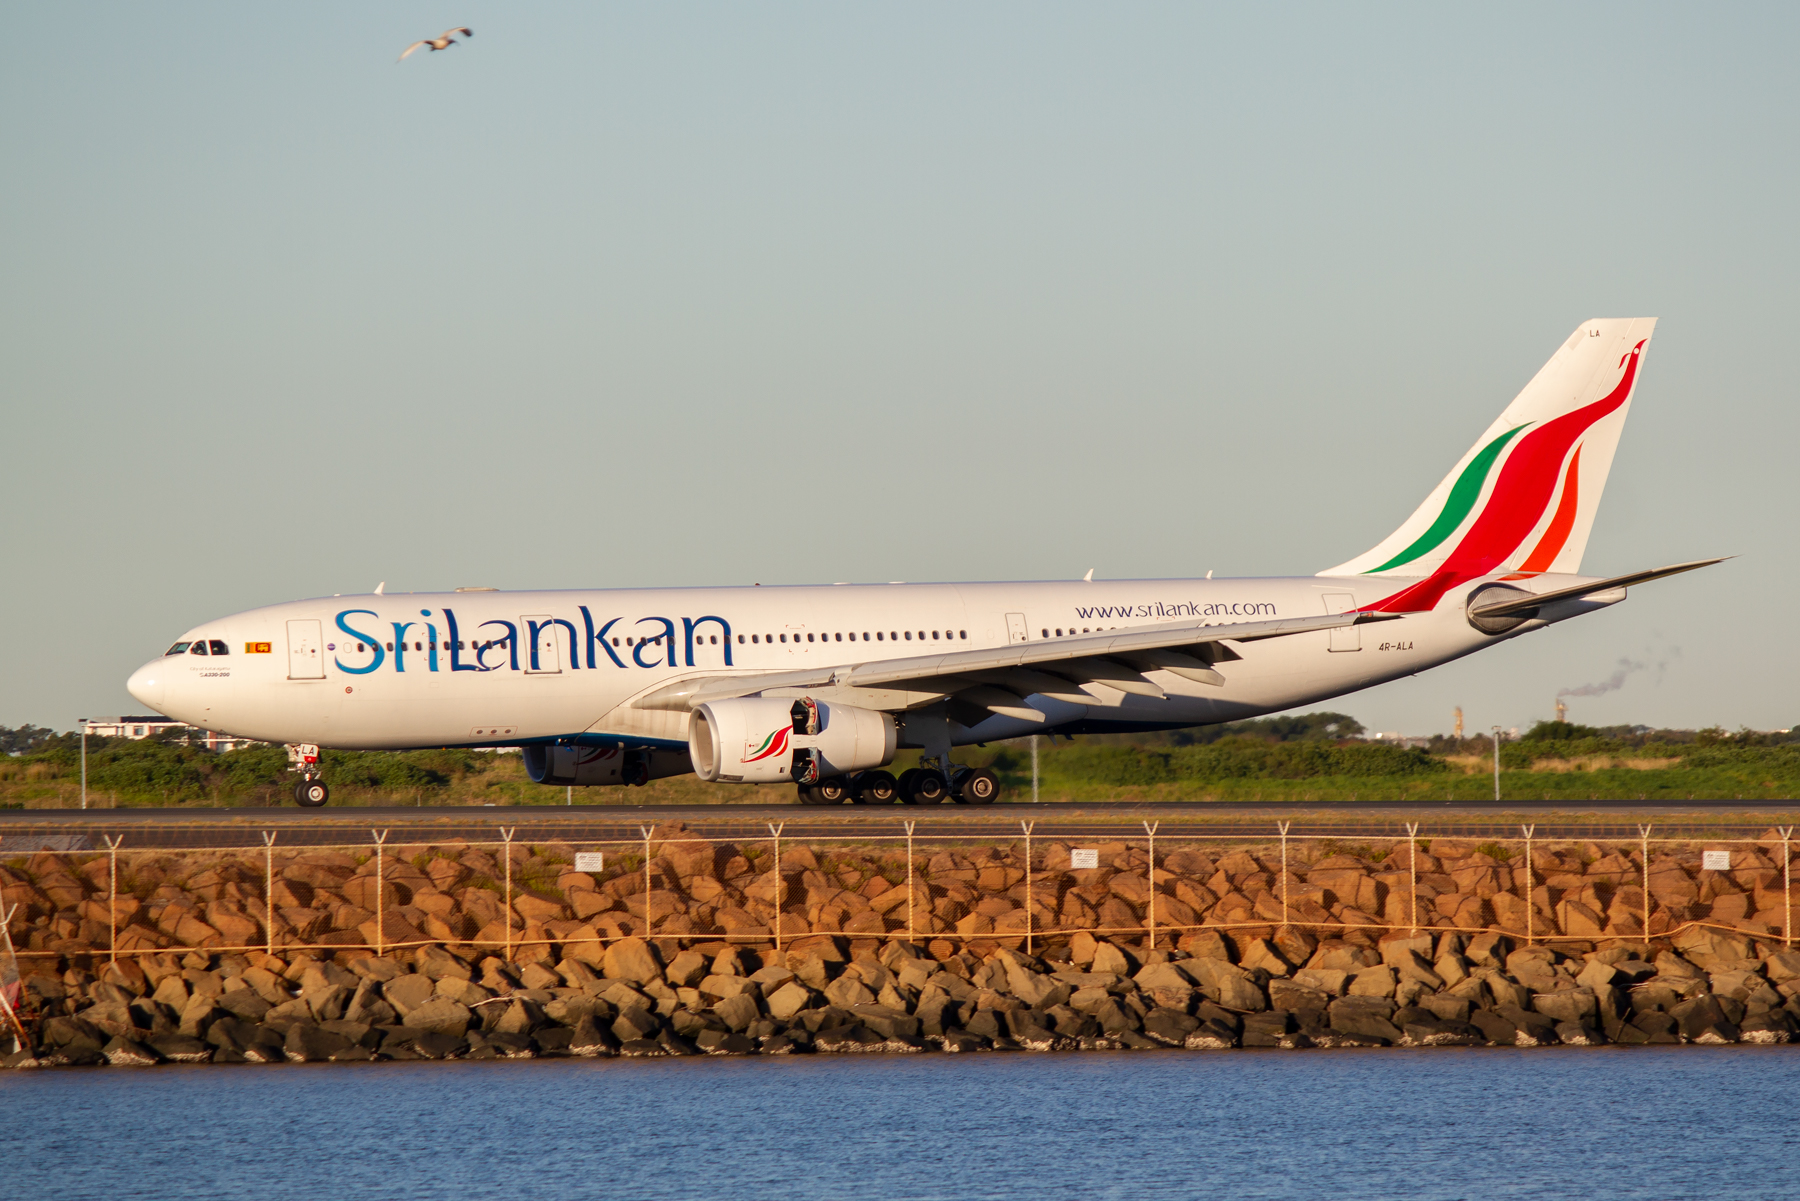 SriLankan Airlines Airbus A330-200 4R-ALA at Kingsford Smith